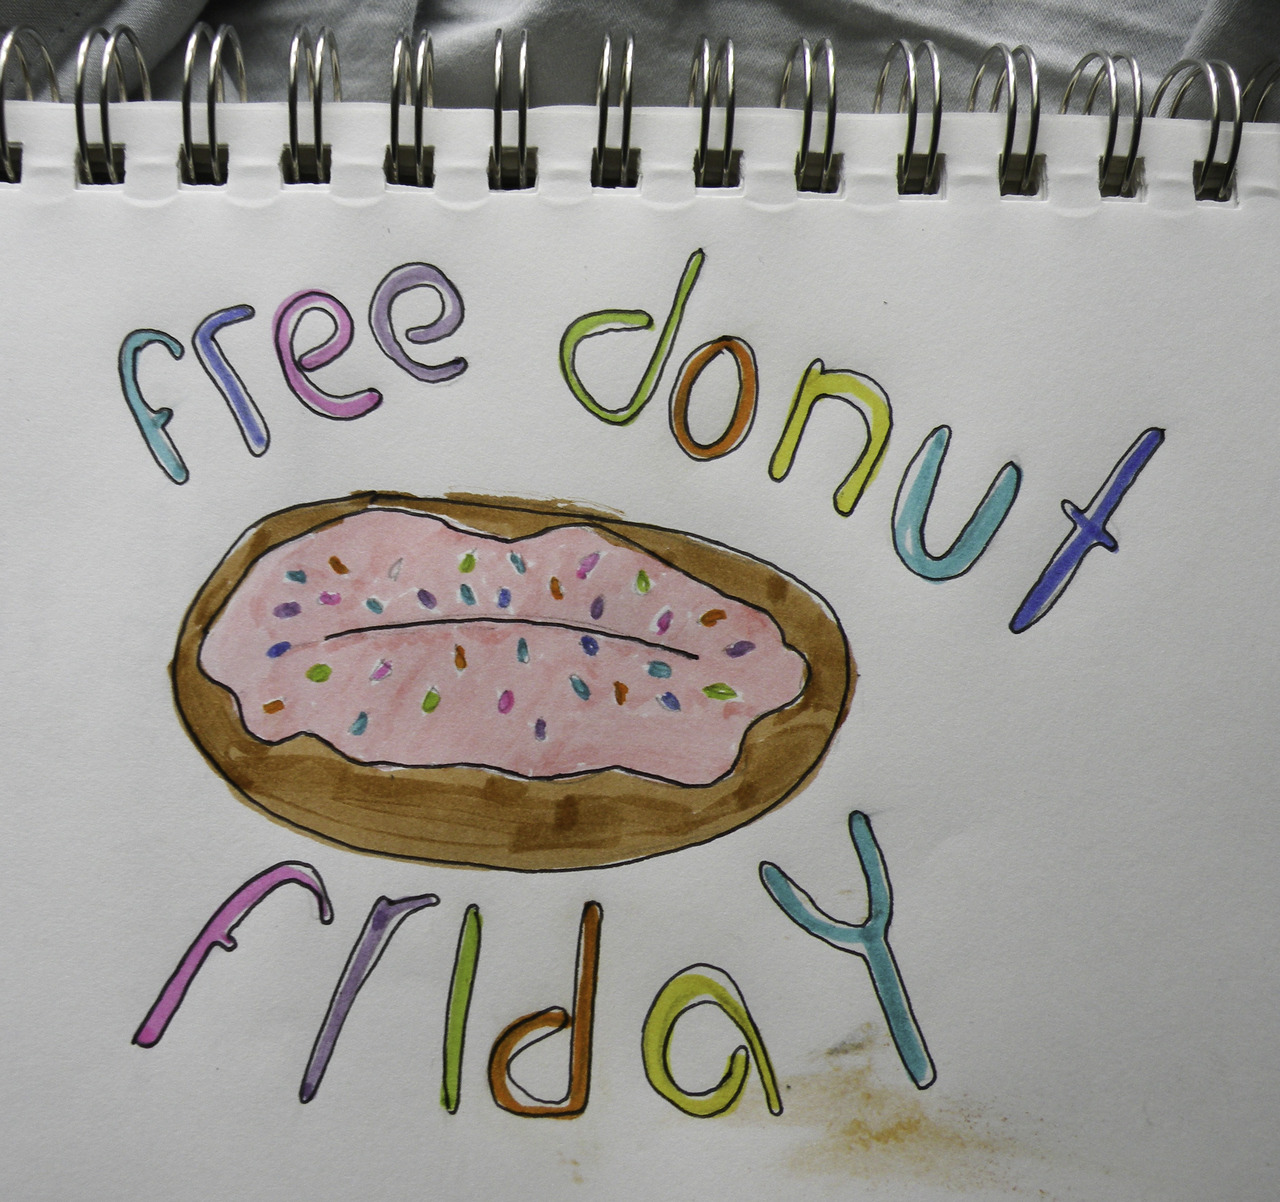 it's free donut friday, y'all. get thee to a DD. (do i care about free doughnuts? no. did i only do this because i love to draw doughnuts? yes. is that orange smudge pizza sauce i spilled on my drawing? yes)